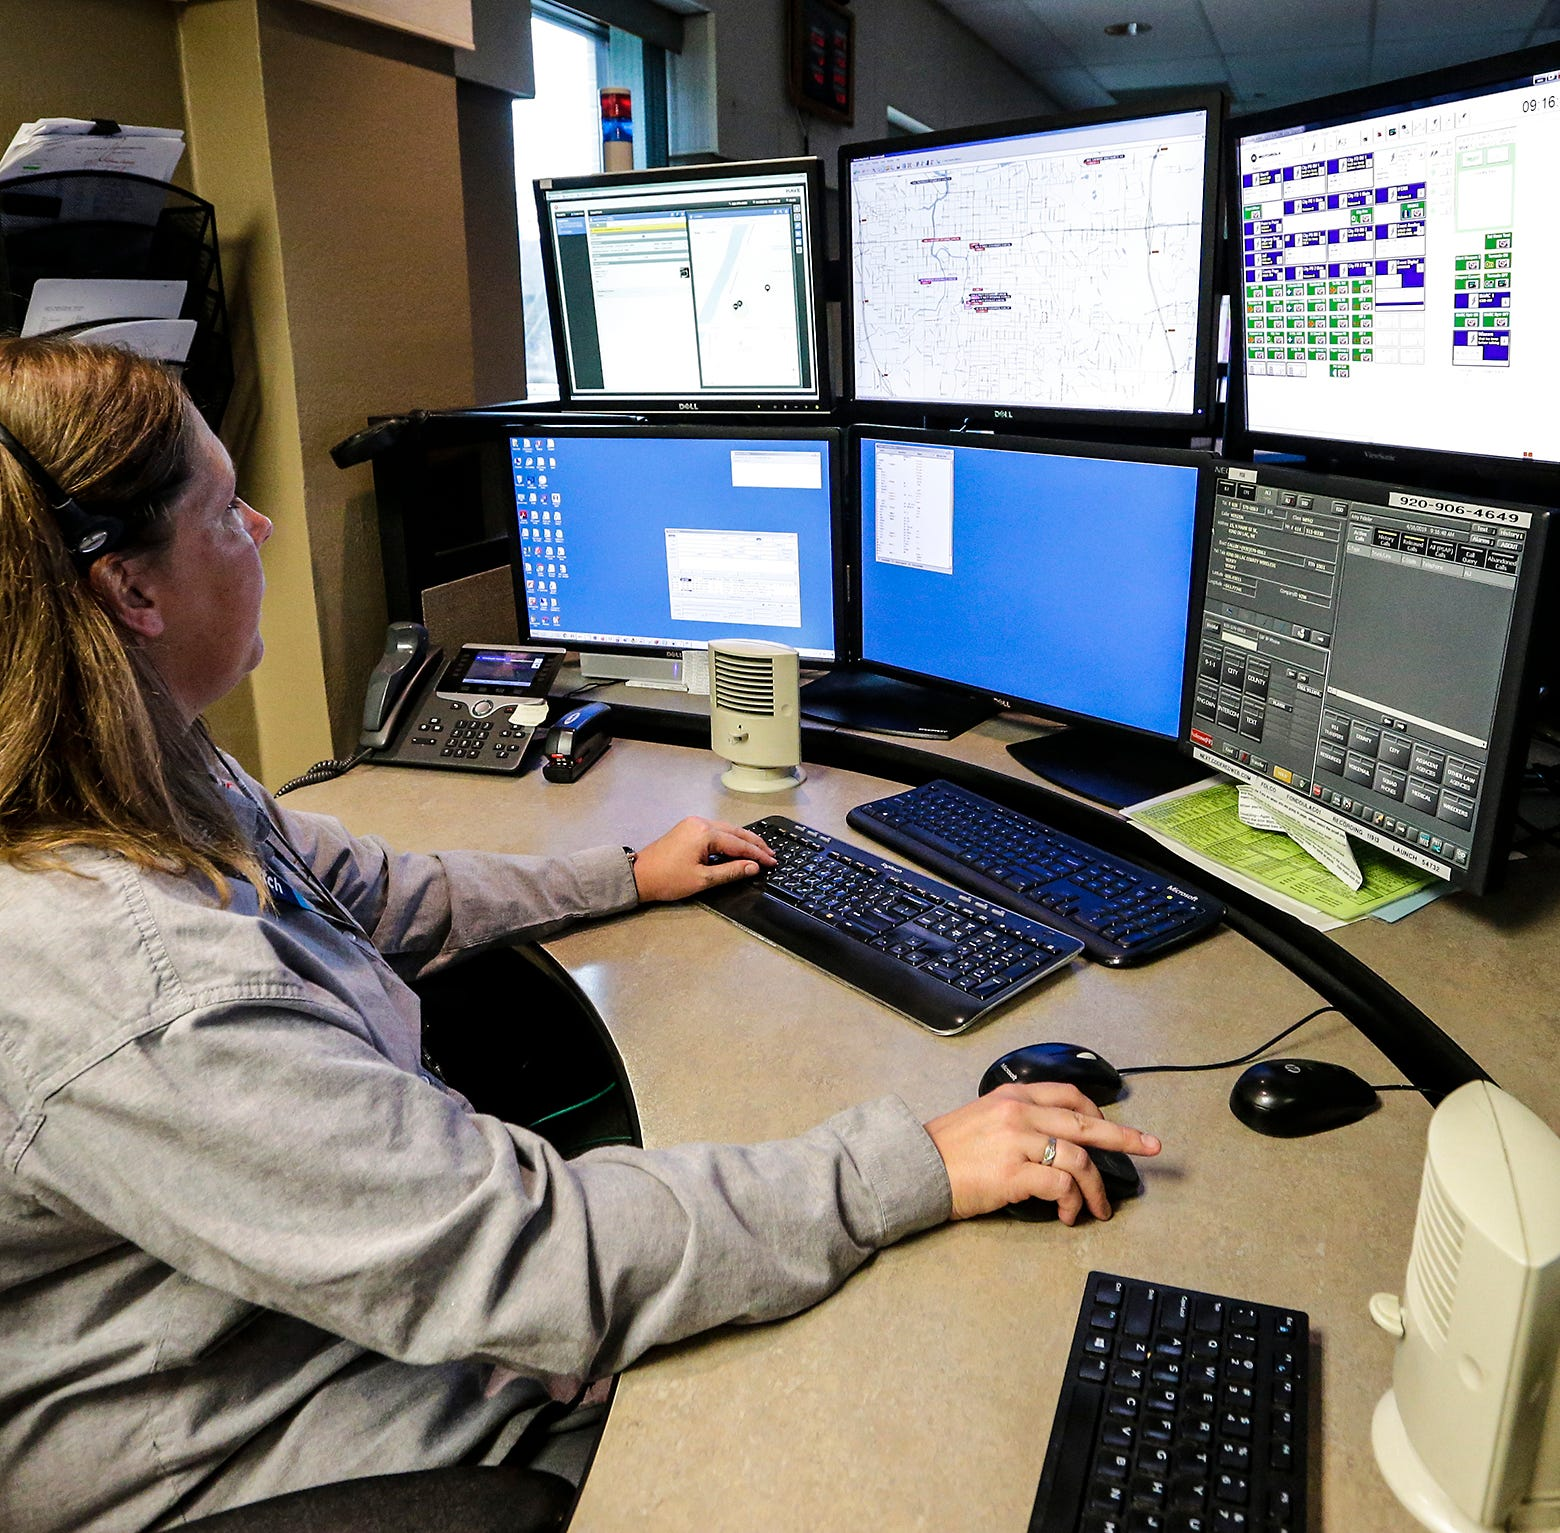 A little information now may save a life: Fond du Lac Co. launches state's first Smart911